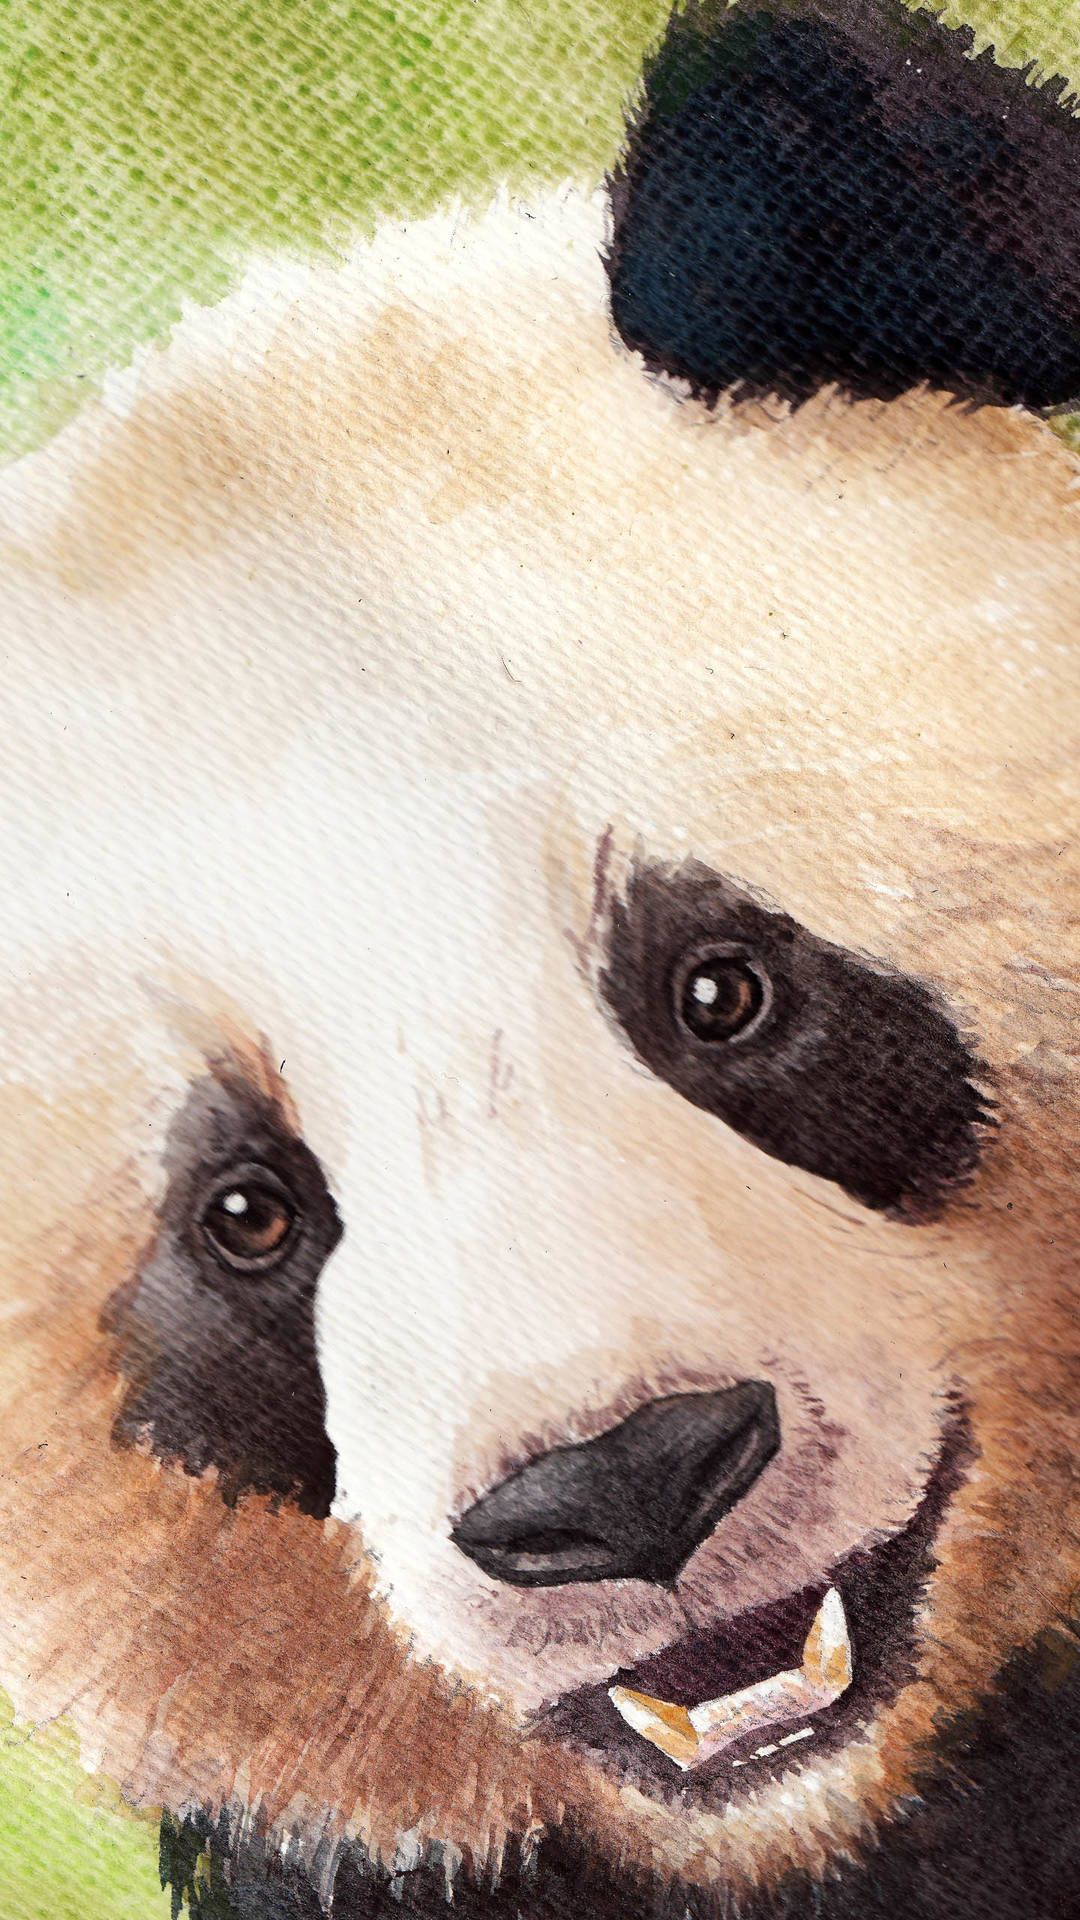 Most Beautiful Iphone Wallpapers 11 Cute Panda Wallpapers For Iphone With 1920x1080